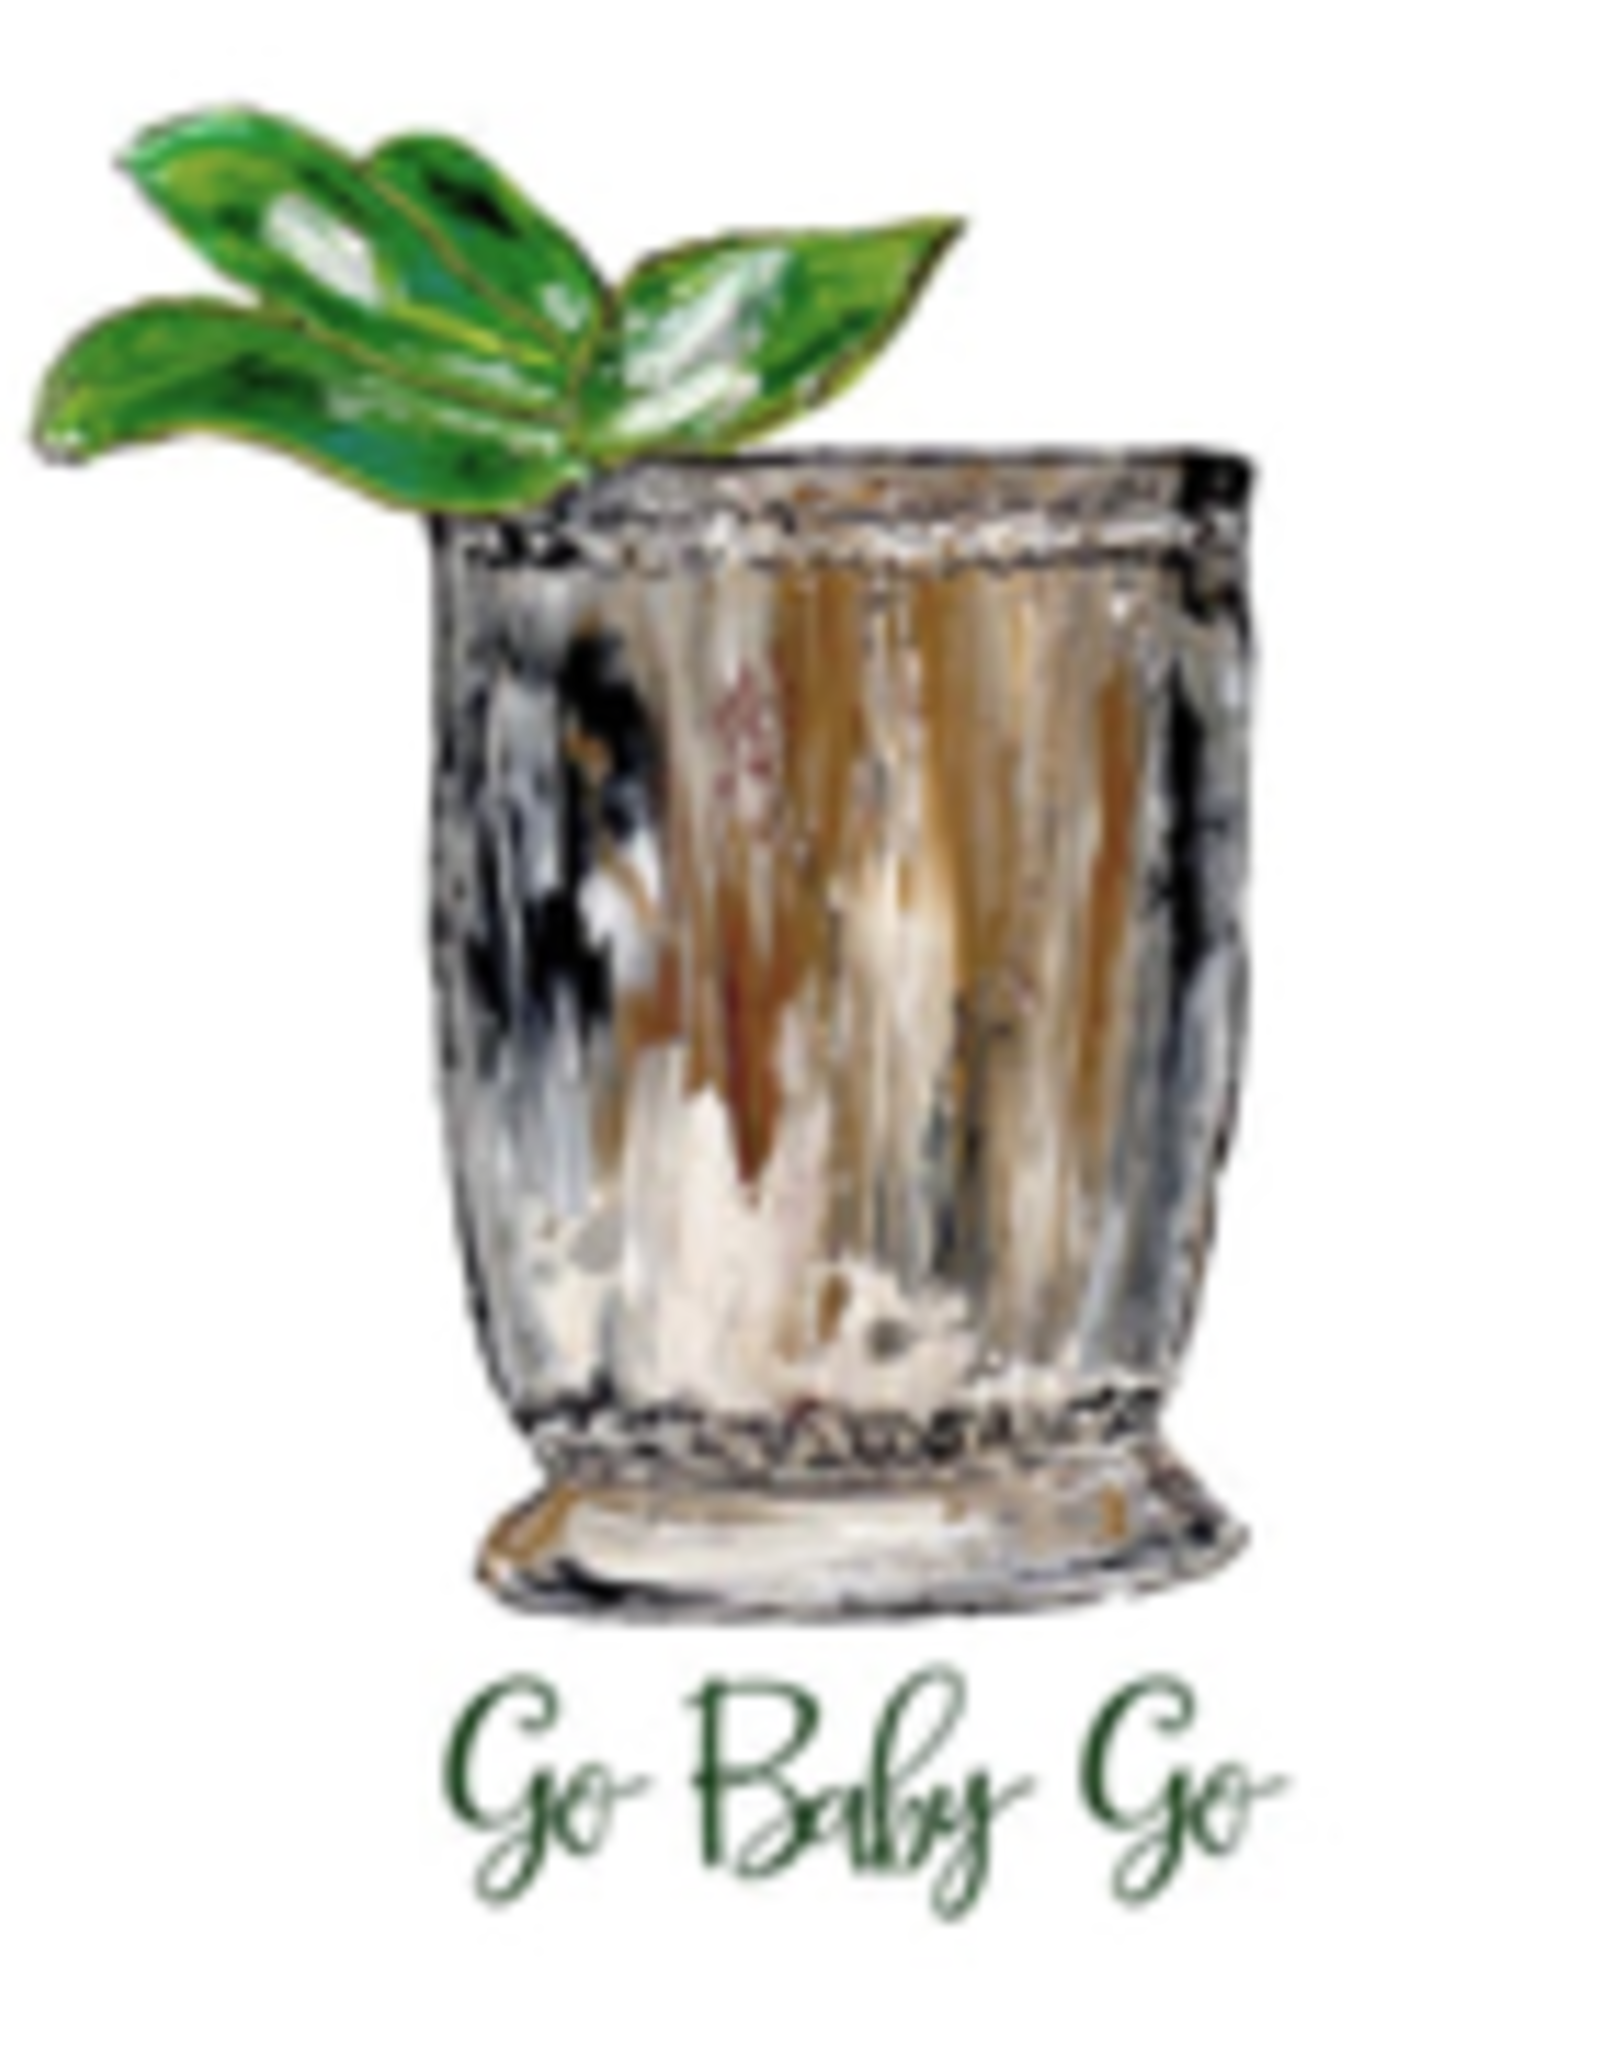 Towel - Mint Julep Cup. Go Baby Go!